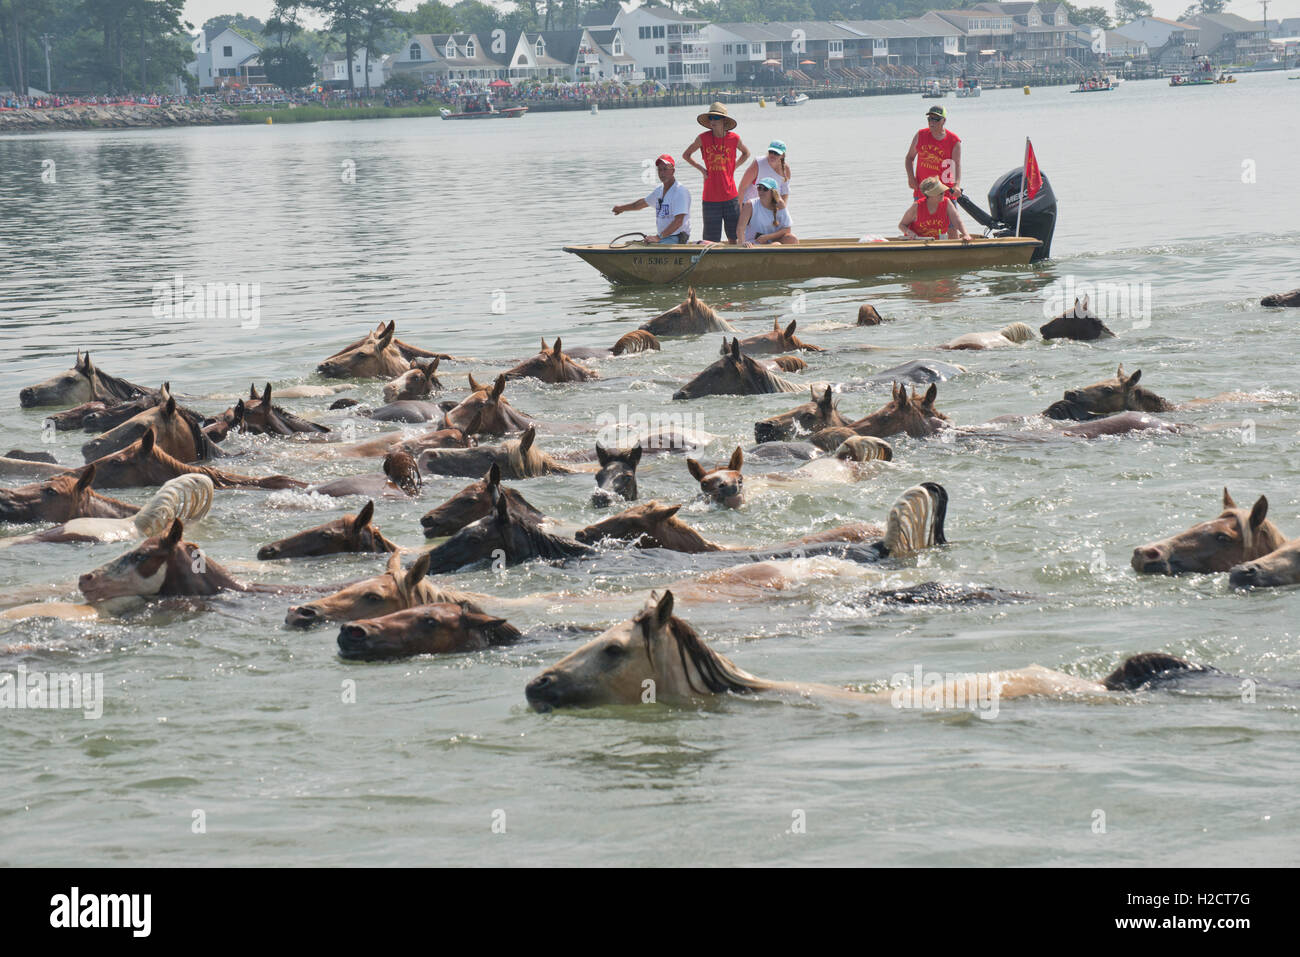 Chincoteague Volunteer Fire Co. volunteers on a nearby boat direct a herd of wild ponies as they swim across the - Stock Image